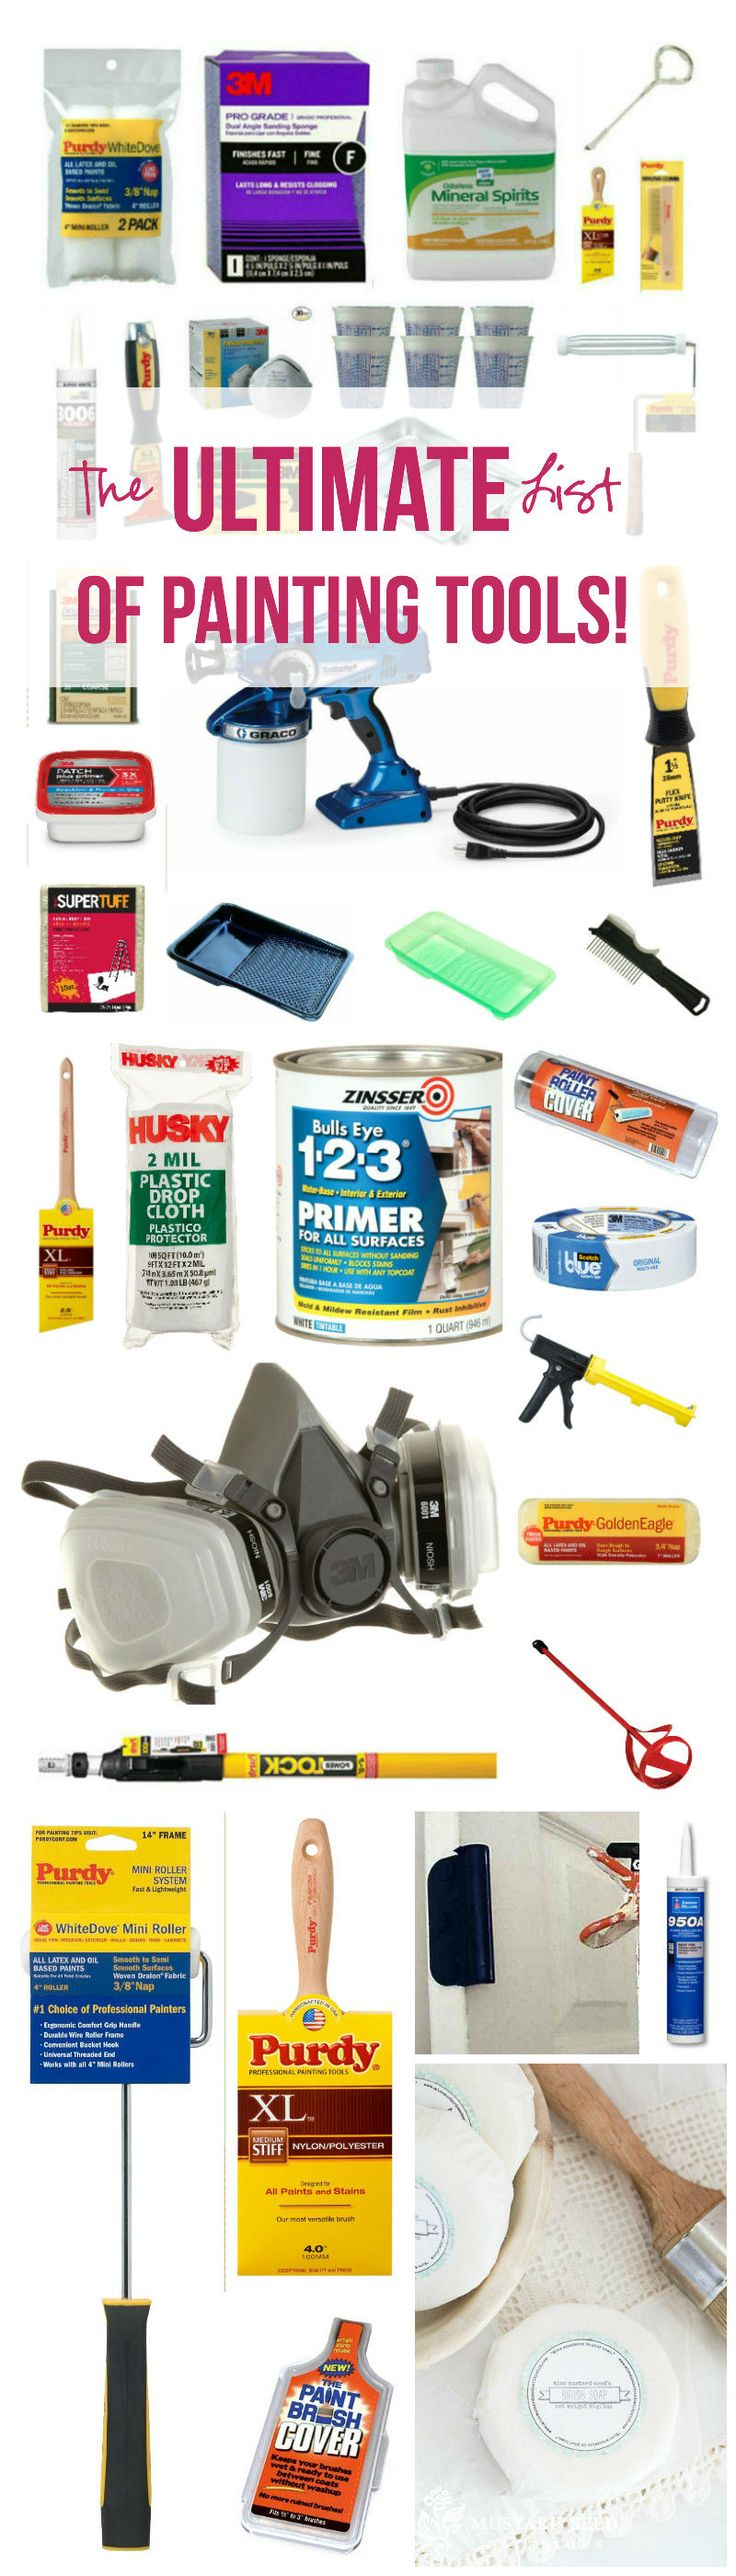 The ULTIMATE List of Painting Tools! - Happily Ever After, Etc.